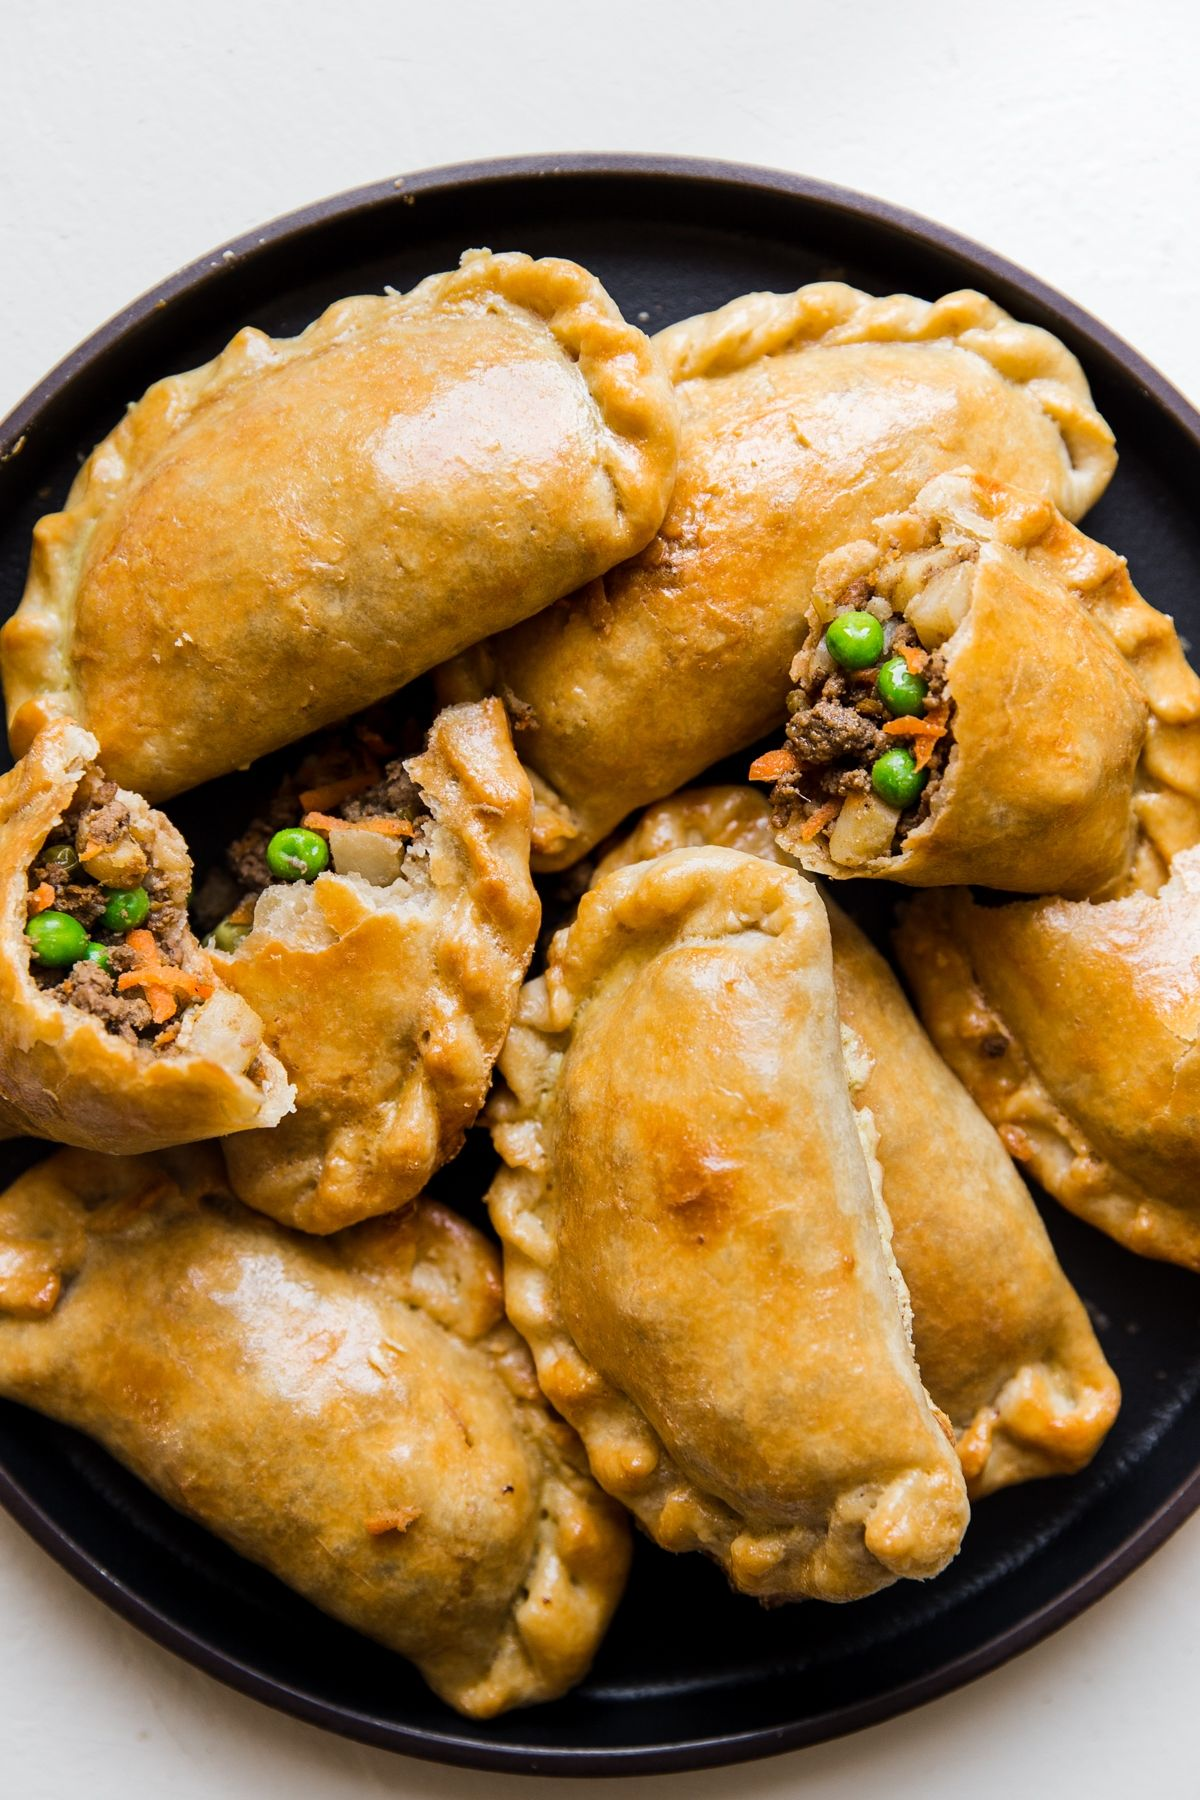 Easy Beef Empanadas Recipe by The Modern Proper ||Tender, flaky crust surrounding a hearty mixture of warmly-spiced ground beef and vegetables—we're going to teach you how to make the best beef empanadas you've ever tasted.